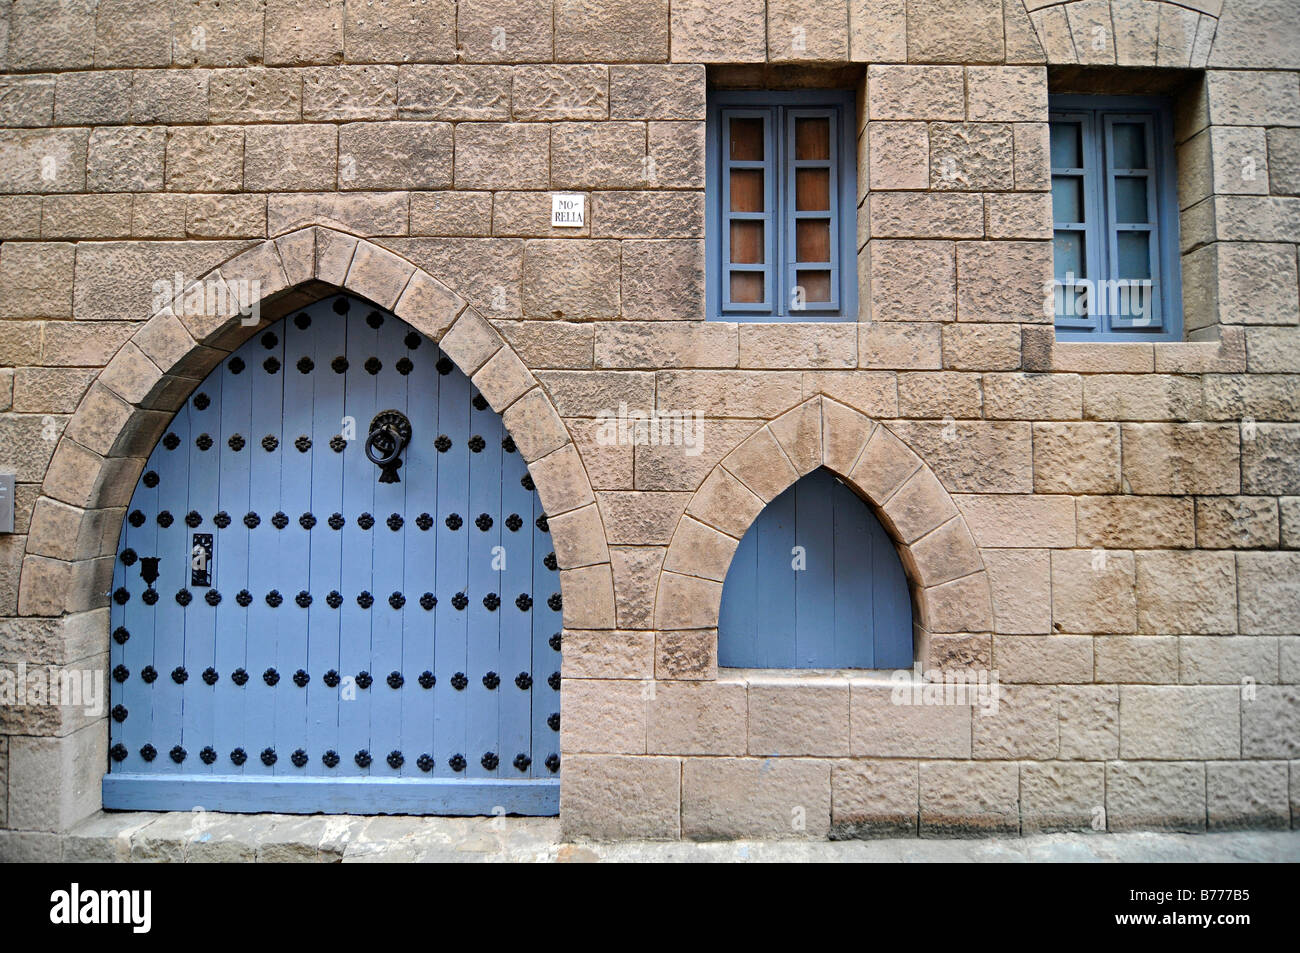 Blue door and windows on a facade, Poble Espanyol, Spanish village, open air museum, Montjuic, Barcelona, Catalonia, - Stock Image